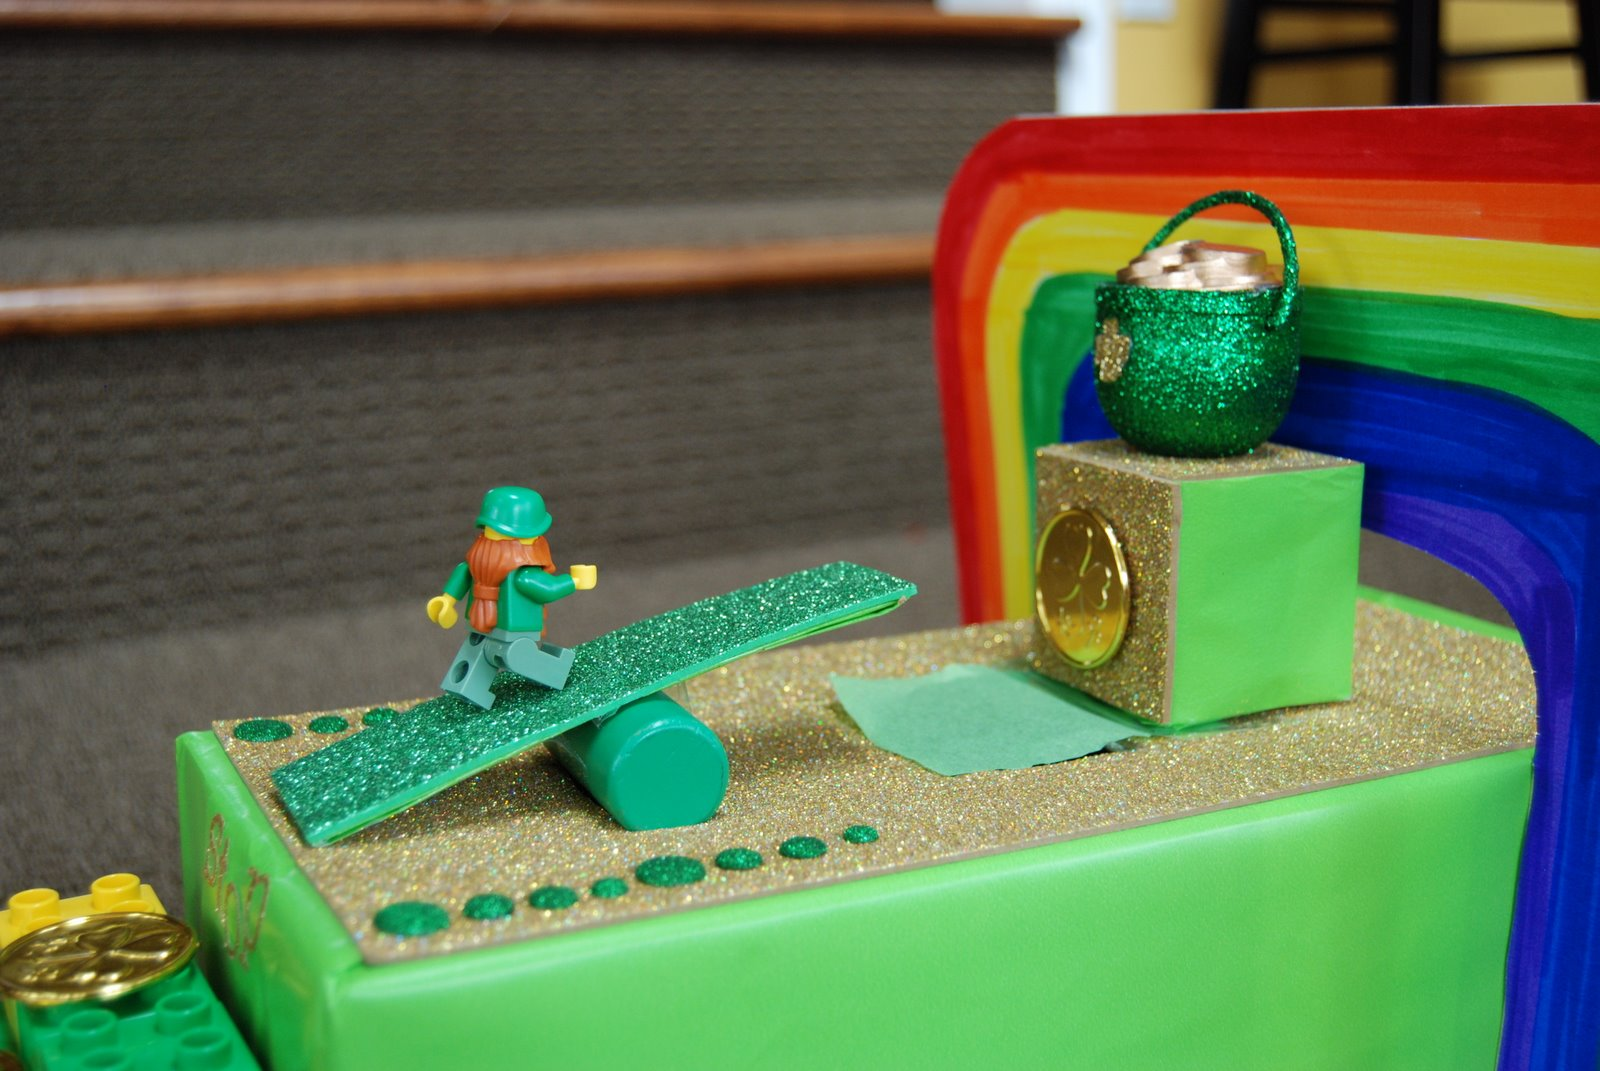 math worksheet : a blonde and 3 boys leprechaun trap : Simple Machine ...